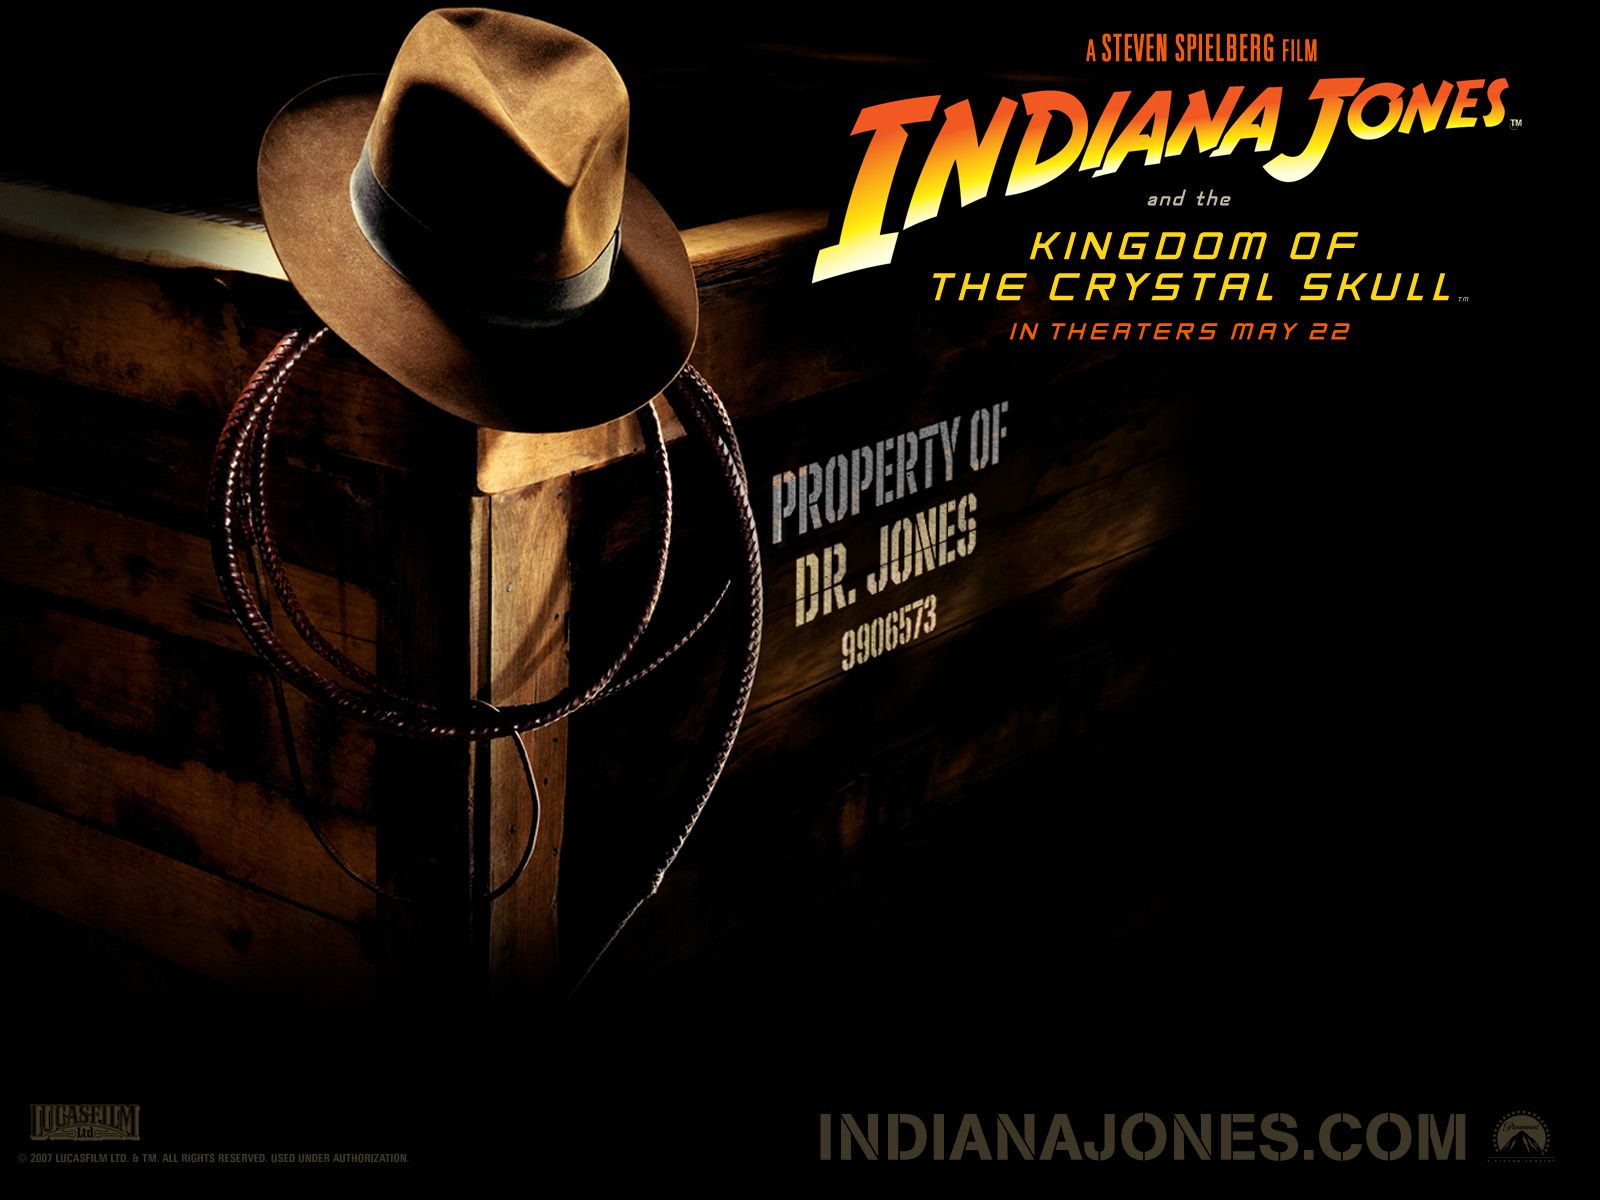 Watch Streaming Hd Indiana Jones And The Kingdom Of The Crystal Skull Starring Harrison Ford Cate Blanchett Shia Labeouf Karen Allen Famed Archaeologist Ad